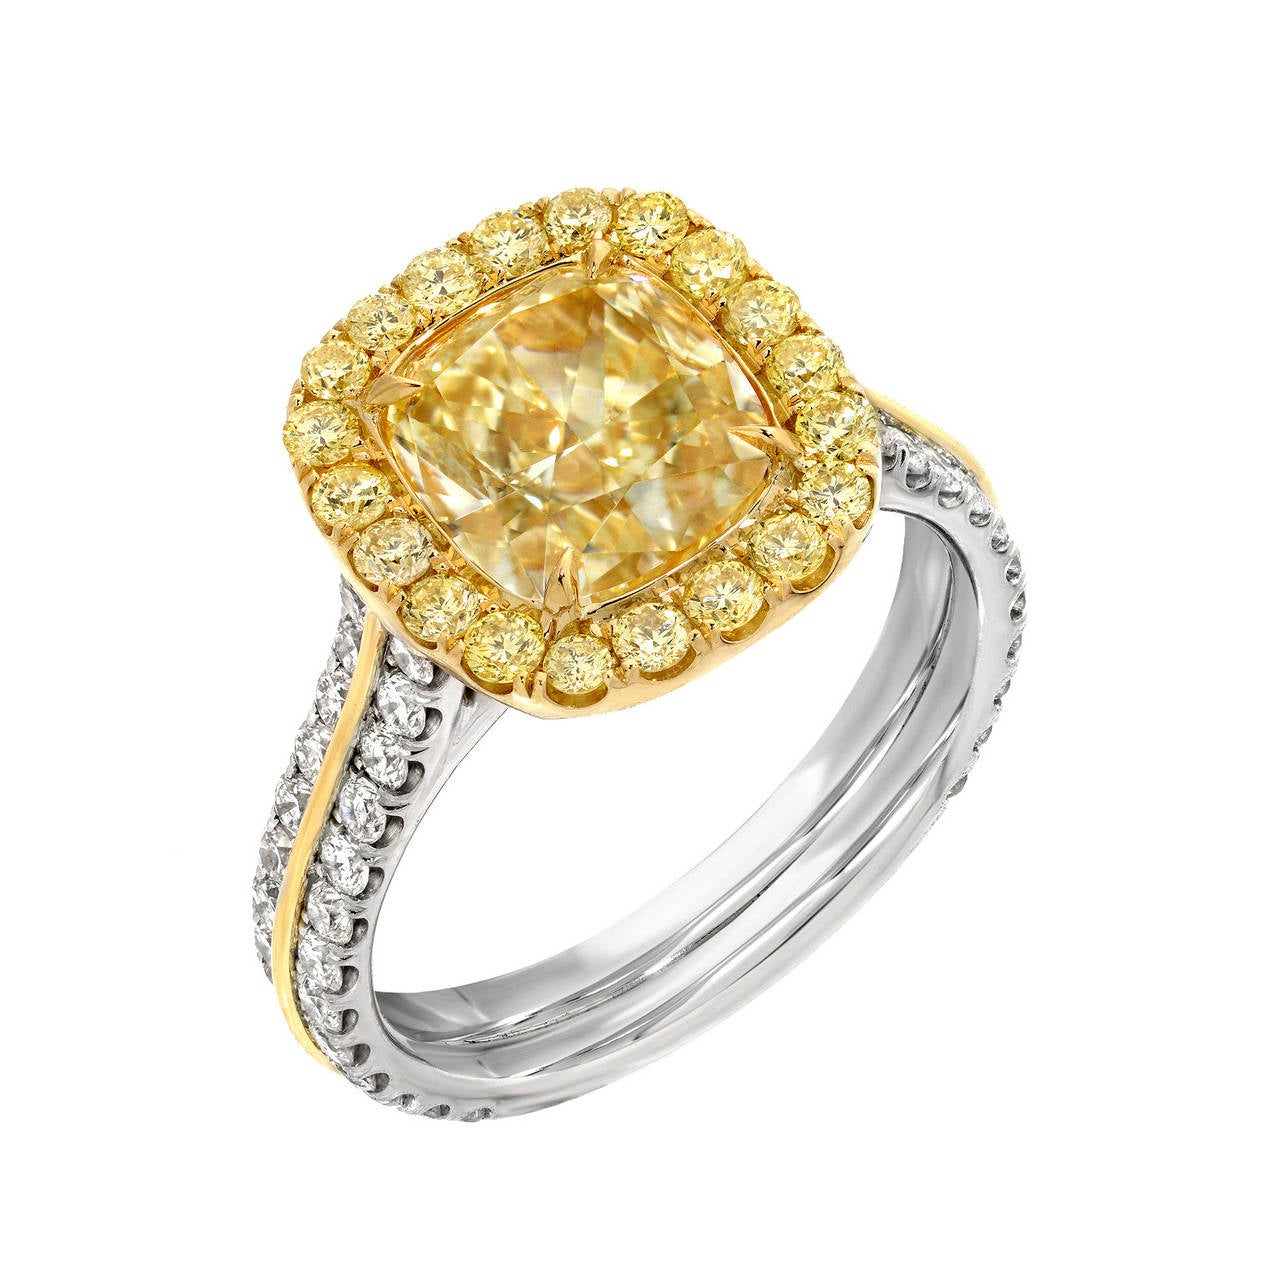 Platinum and 18K yellow gold ring, set with a supreme, G.I.A certified, 2.40 carat Fancy Light Yellow diamond cushion cut, VS2 clarity, surrounded by fancy yellow diamond rounds totaling 0.37 carats, and accented by round white diamonds totaling